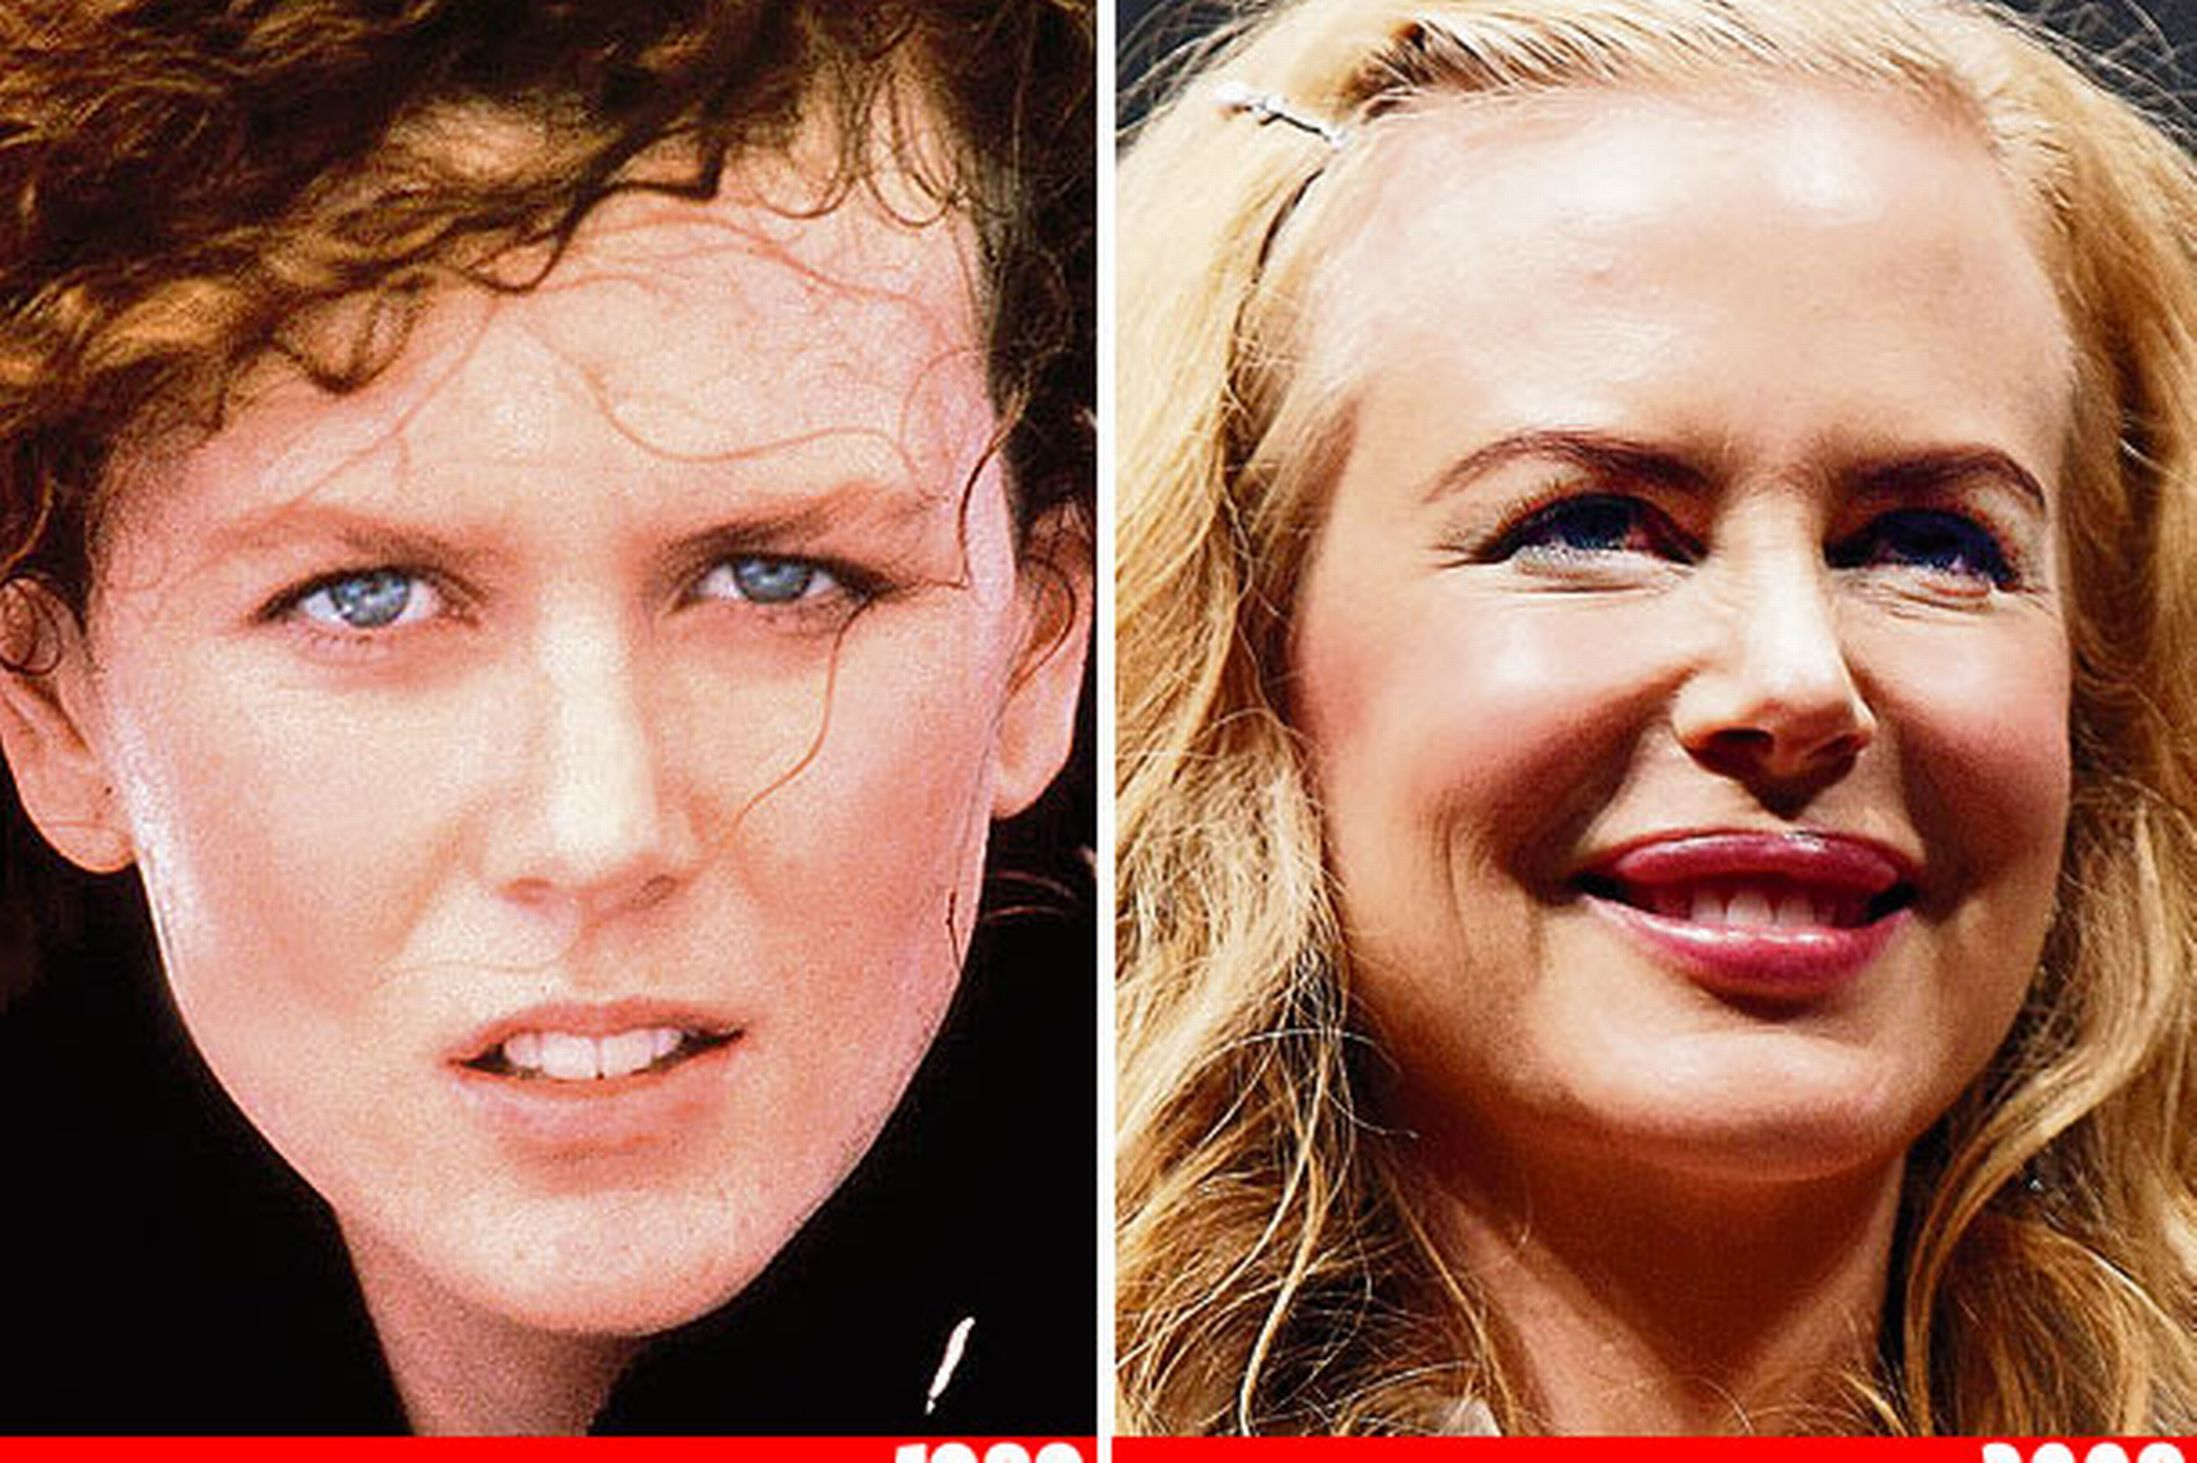 Which celebrities have had cosmetic surgery